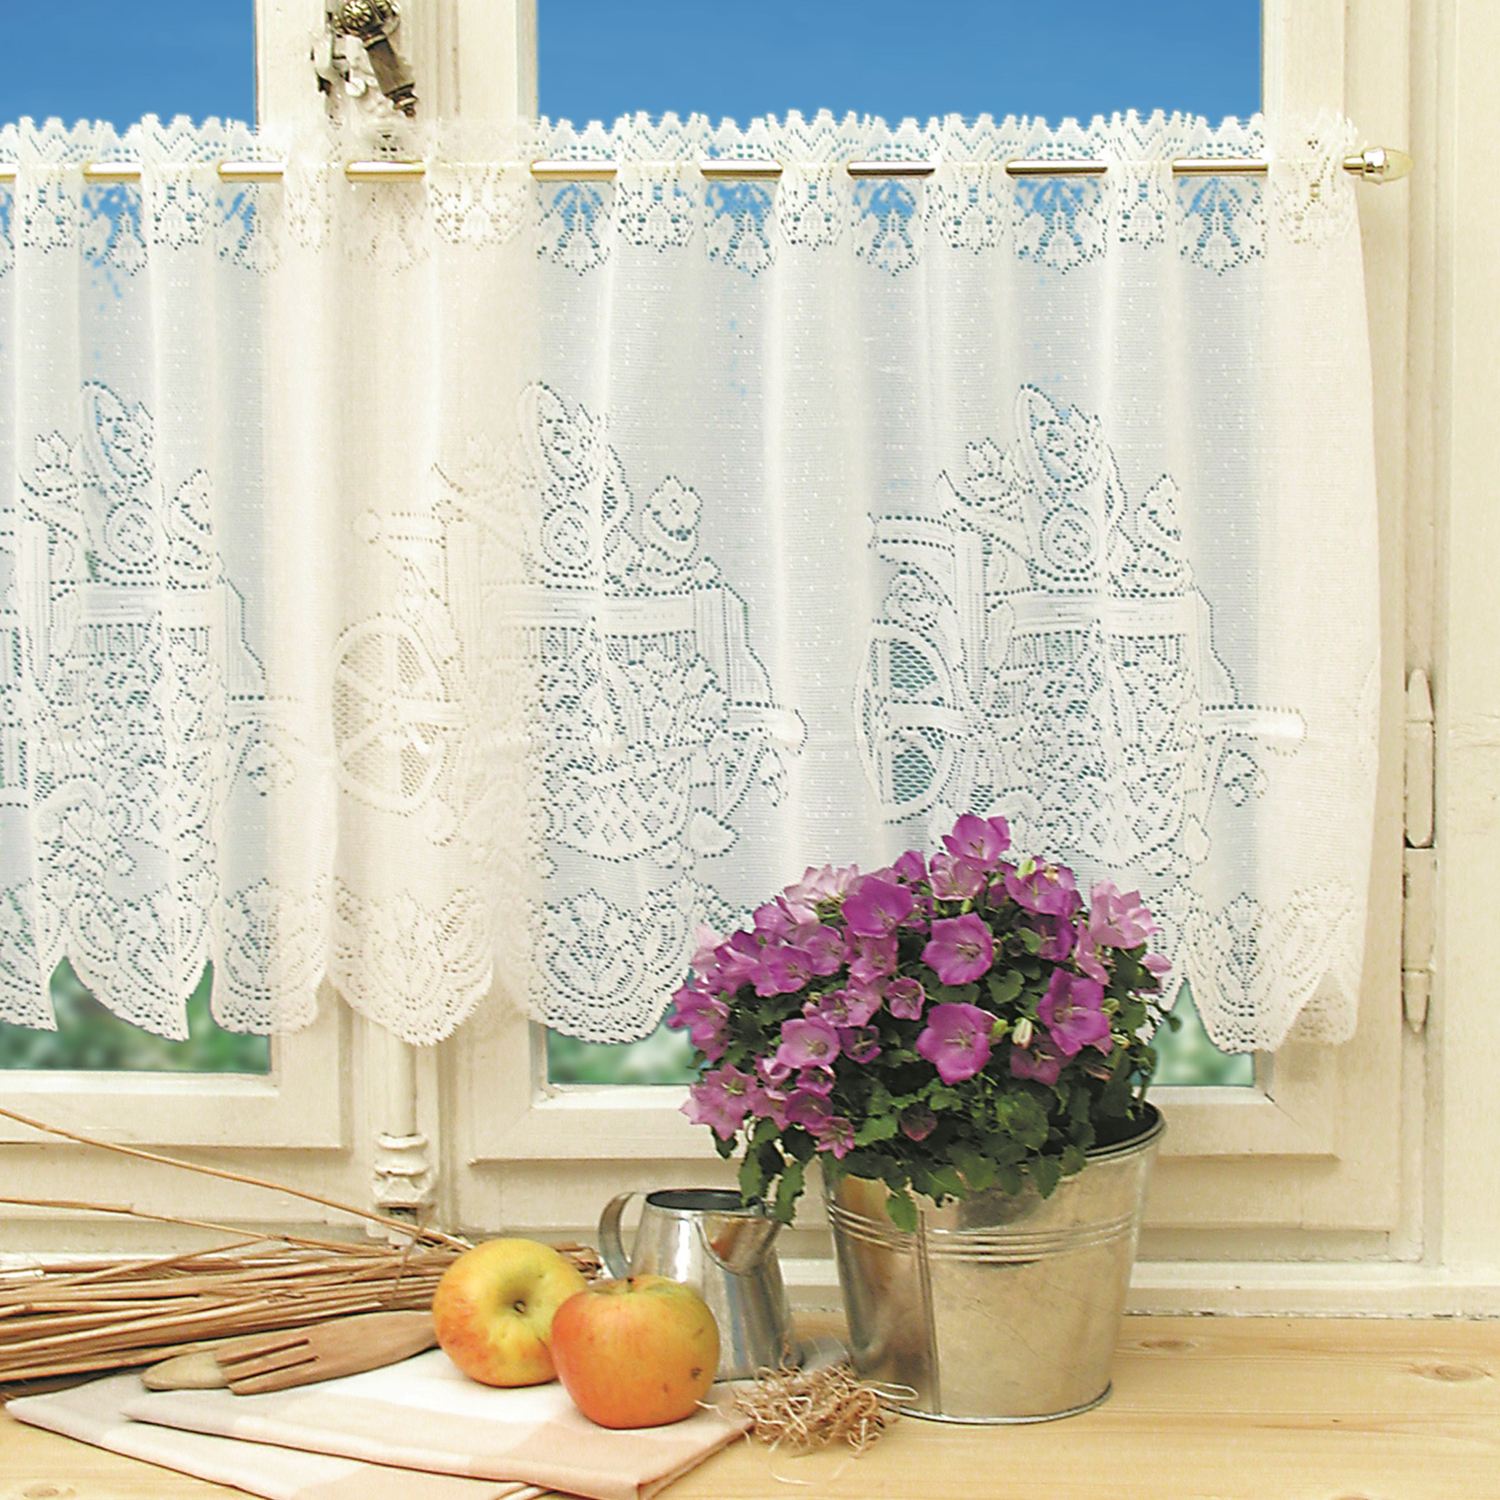 1pc Lace Coffee Curtain Window Tulle Butterfly Apple Curtains For Living Room Kitchen Treatments Voile Curtain Festival Decor Curtains Aliexpress